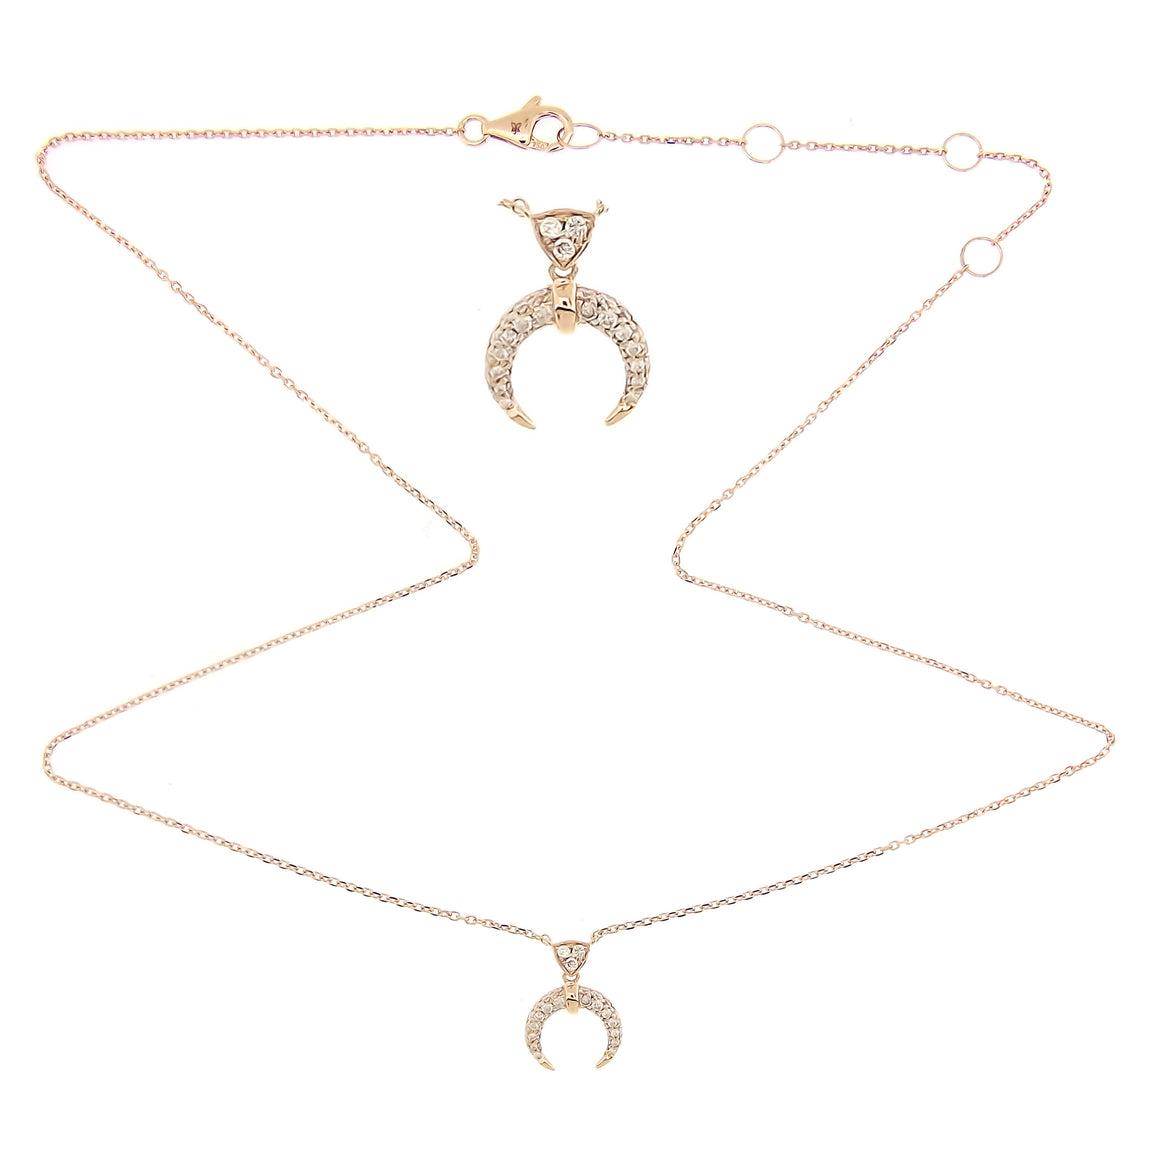 Tiny Half-Moon Necklace/Choker with diamonds in 18Karat Rose Gold